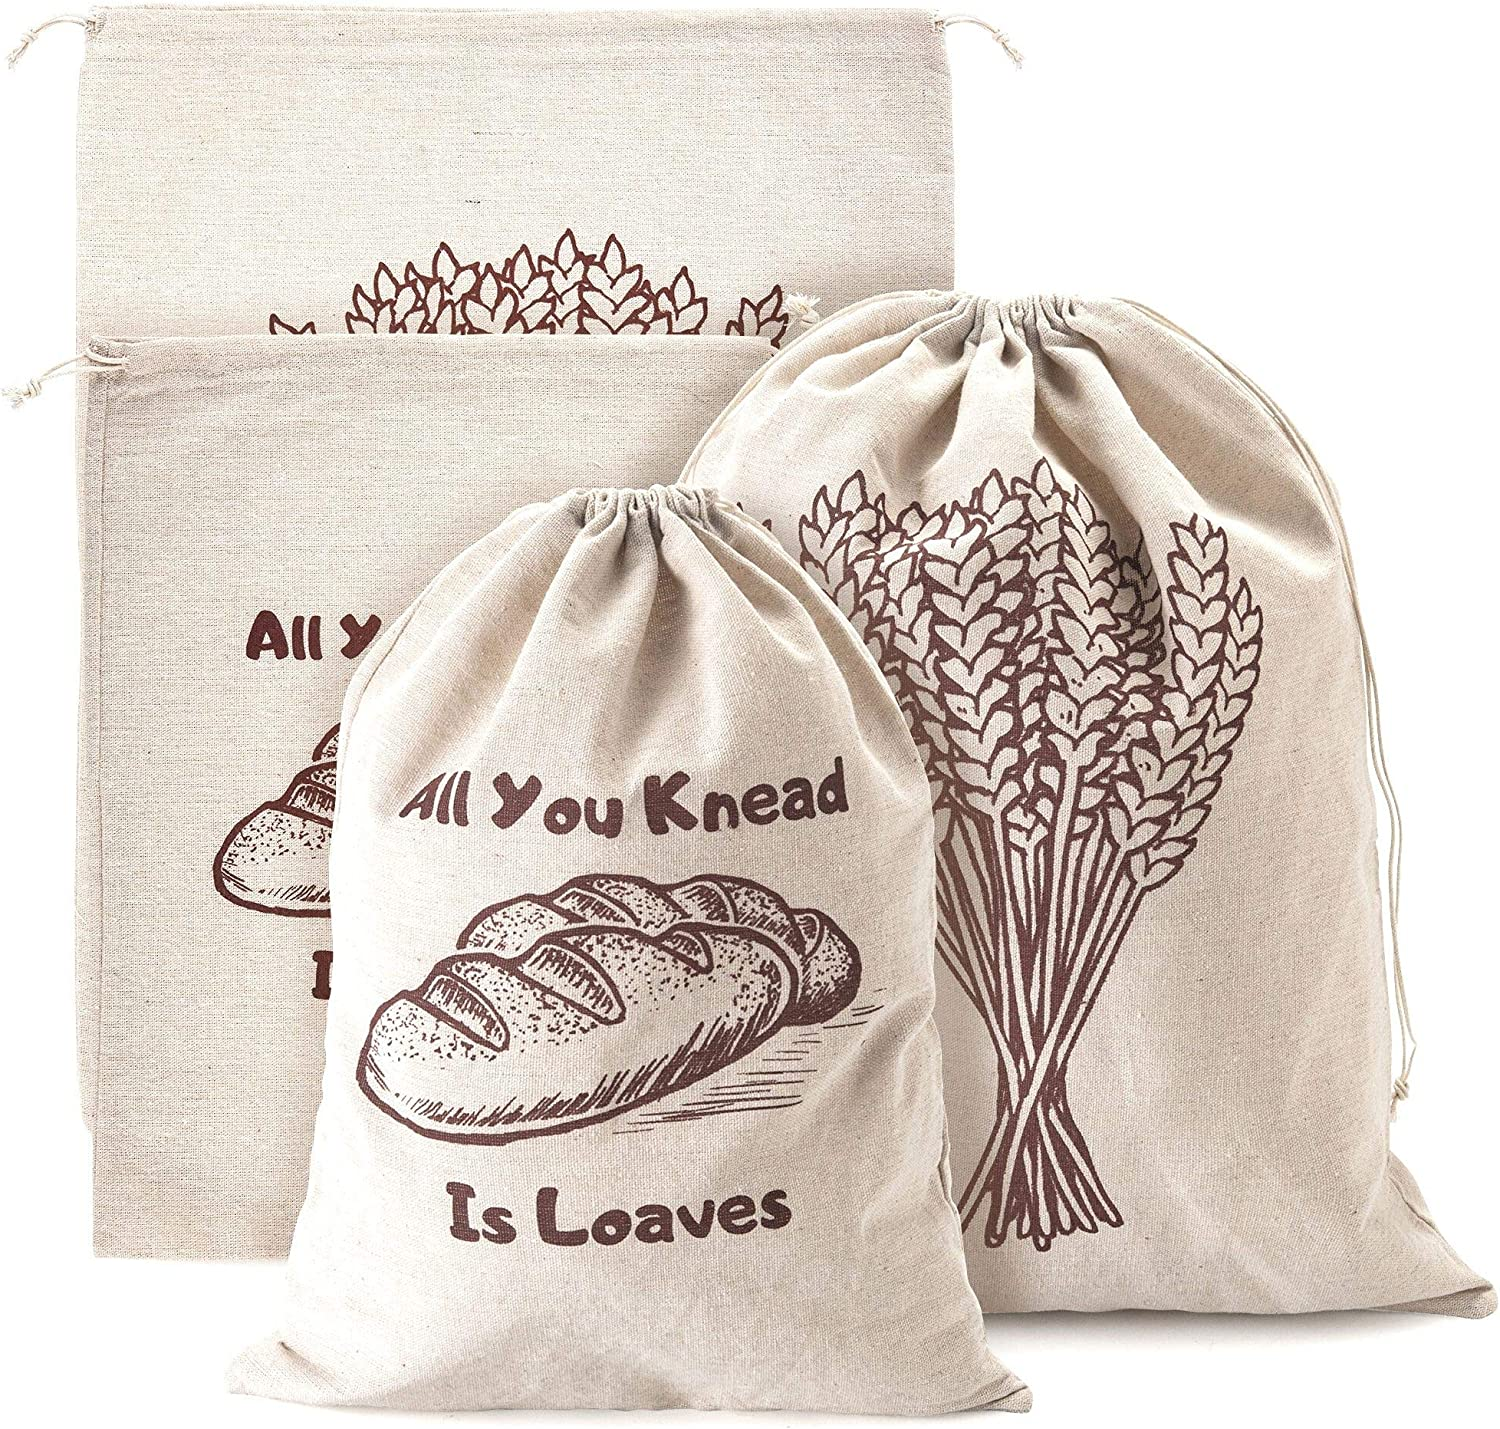 Linen Bread Bags, Pack of 4 Large and Extra Large Natural Unbleached Bread Bags, Reusable Drawstring Bag for Loaf, Homemade Artisan Bread Storage, Linen Bags for Food Storage, Ideal Gift for Bakers